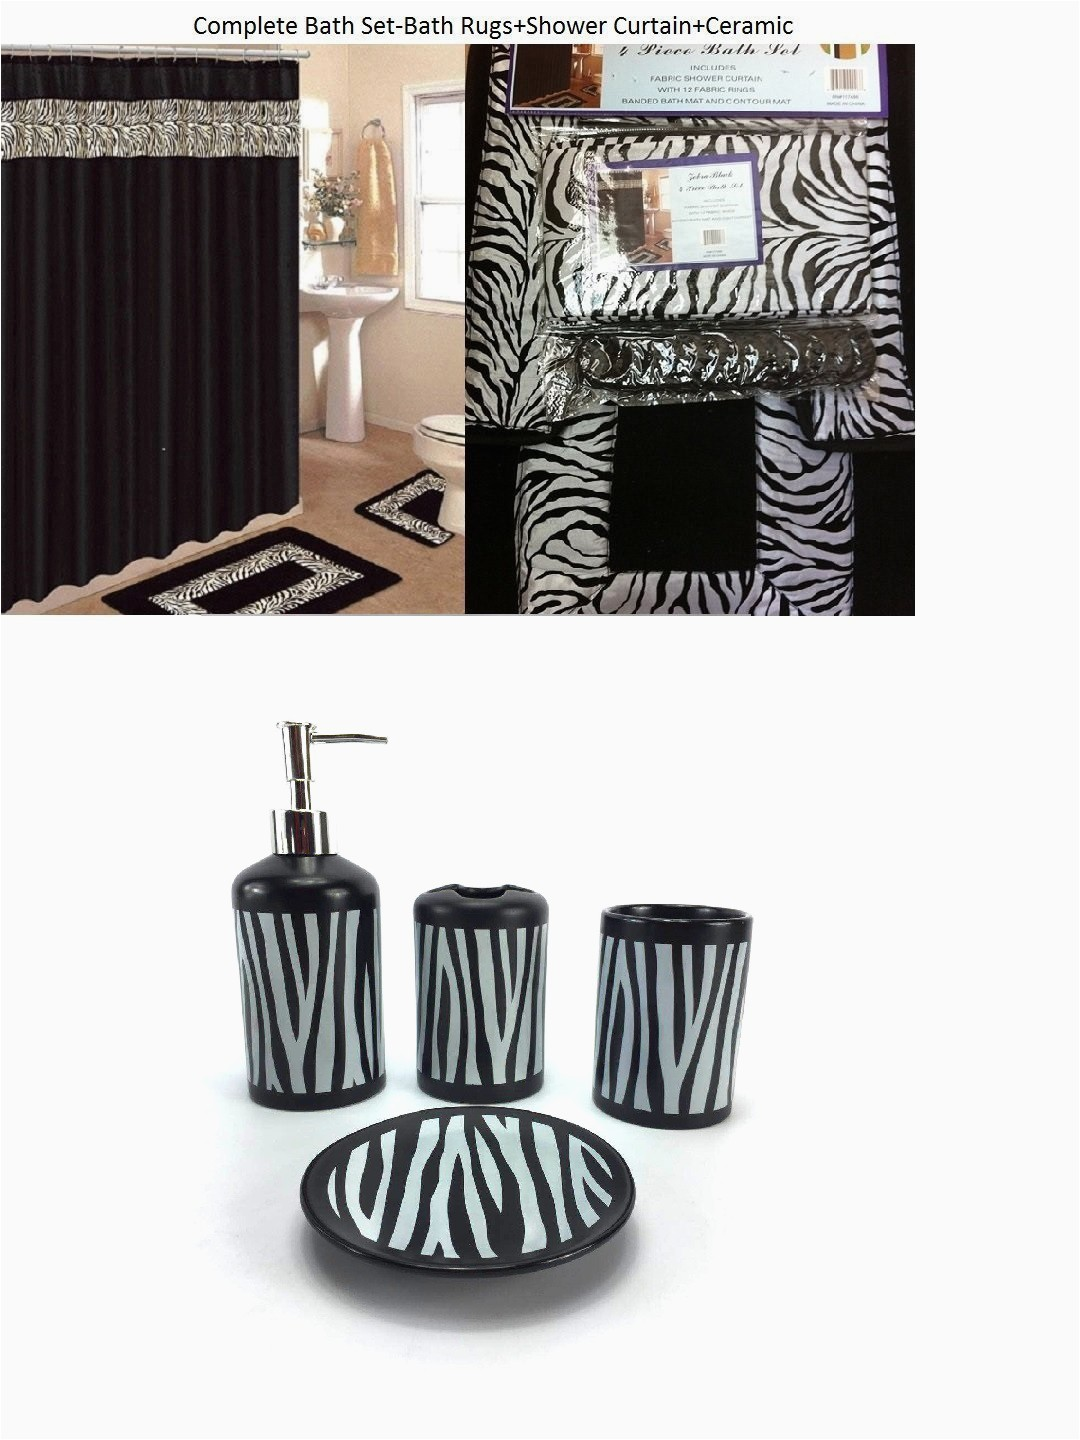 Zebra Print Bath Rug 19 Piece Bath Accessory Set Black Zebra Animal Print Bath Rug Set Black Zebra Shower Curtain & Accessories Walmart